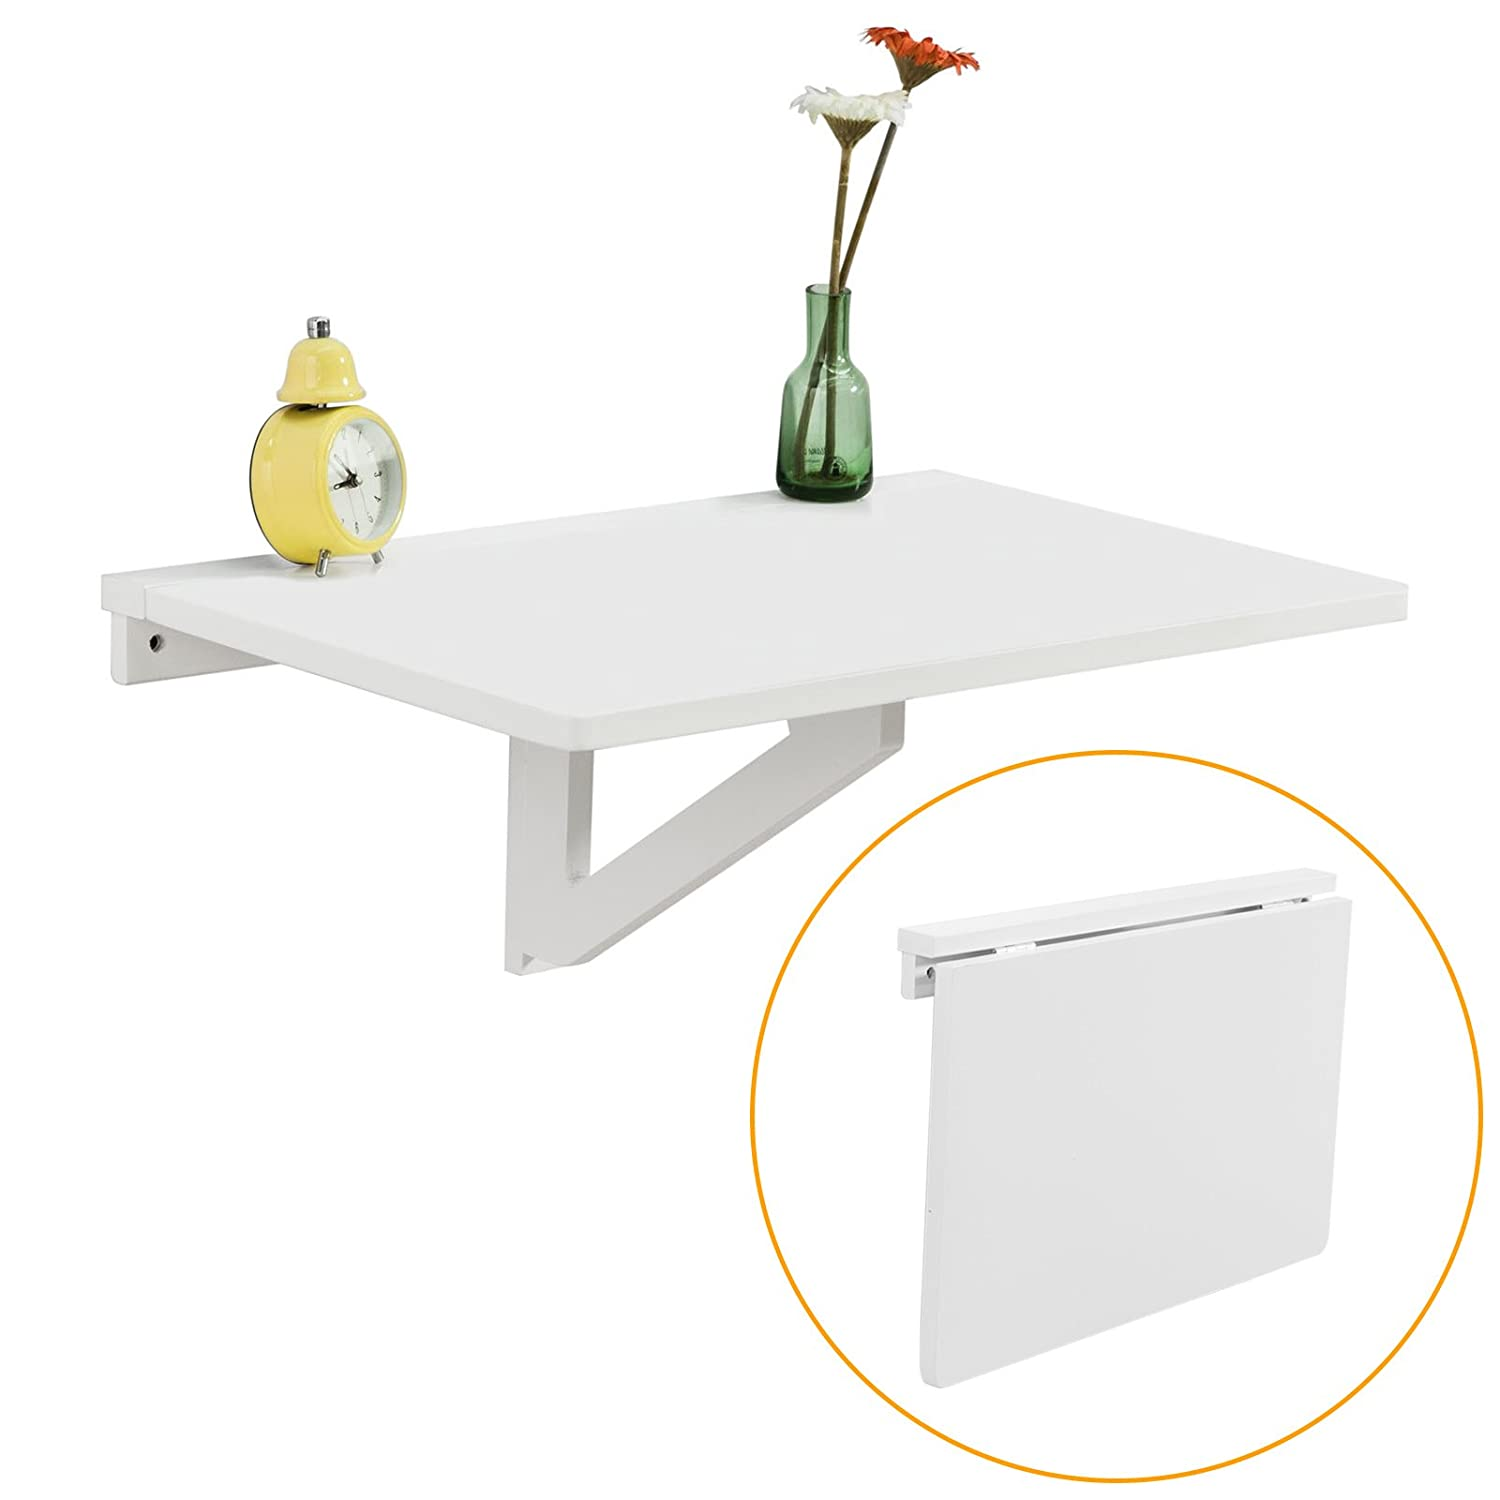 Wall folding table mechanism - Sobuy Wall Mounted Drop Leaf Table Folding Kitchen Dining Table Desk Children Table 60x40cm Fwt03 W White Amazon Co Uk Kitchen Home